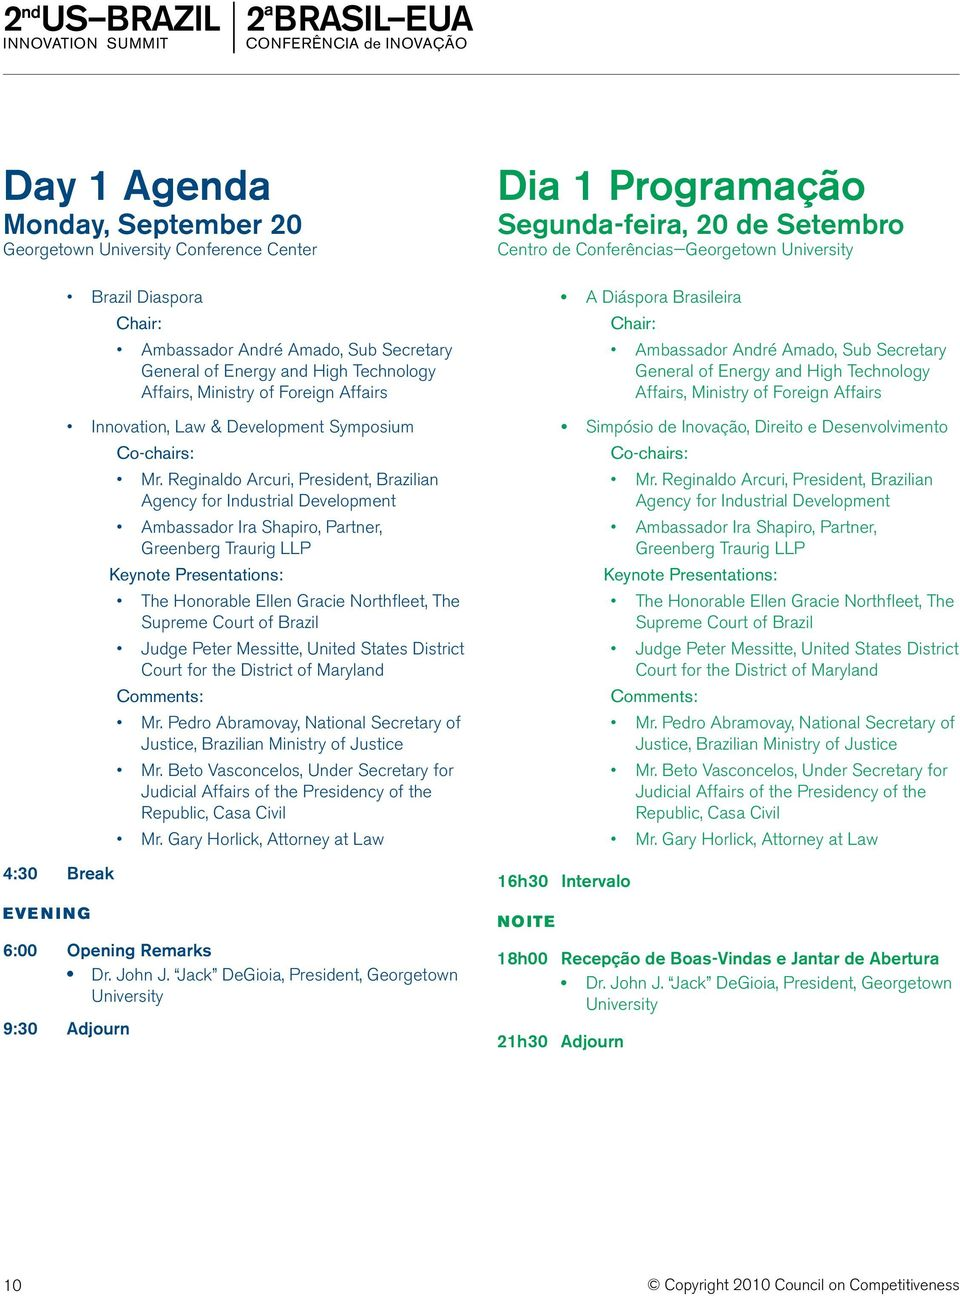 Reginaldo Arcuri, President, Brazilian Agency for Industrial Development Ambassador Ira Shapiro, Partner, Greenberg Traurig LLP Keynote Presentations: The Honorable Ellen Gracie Northfleet, The